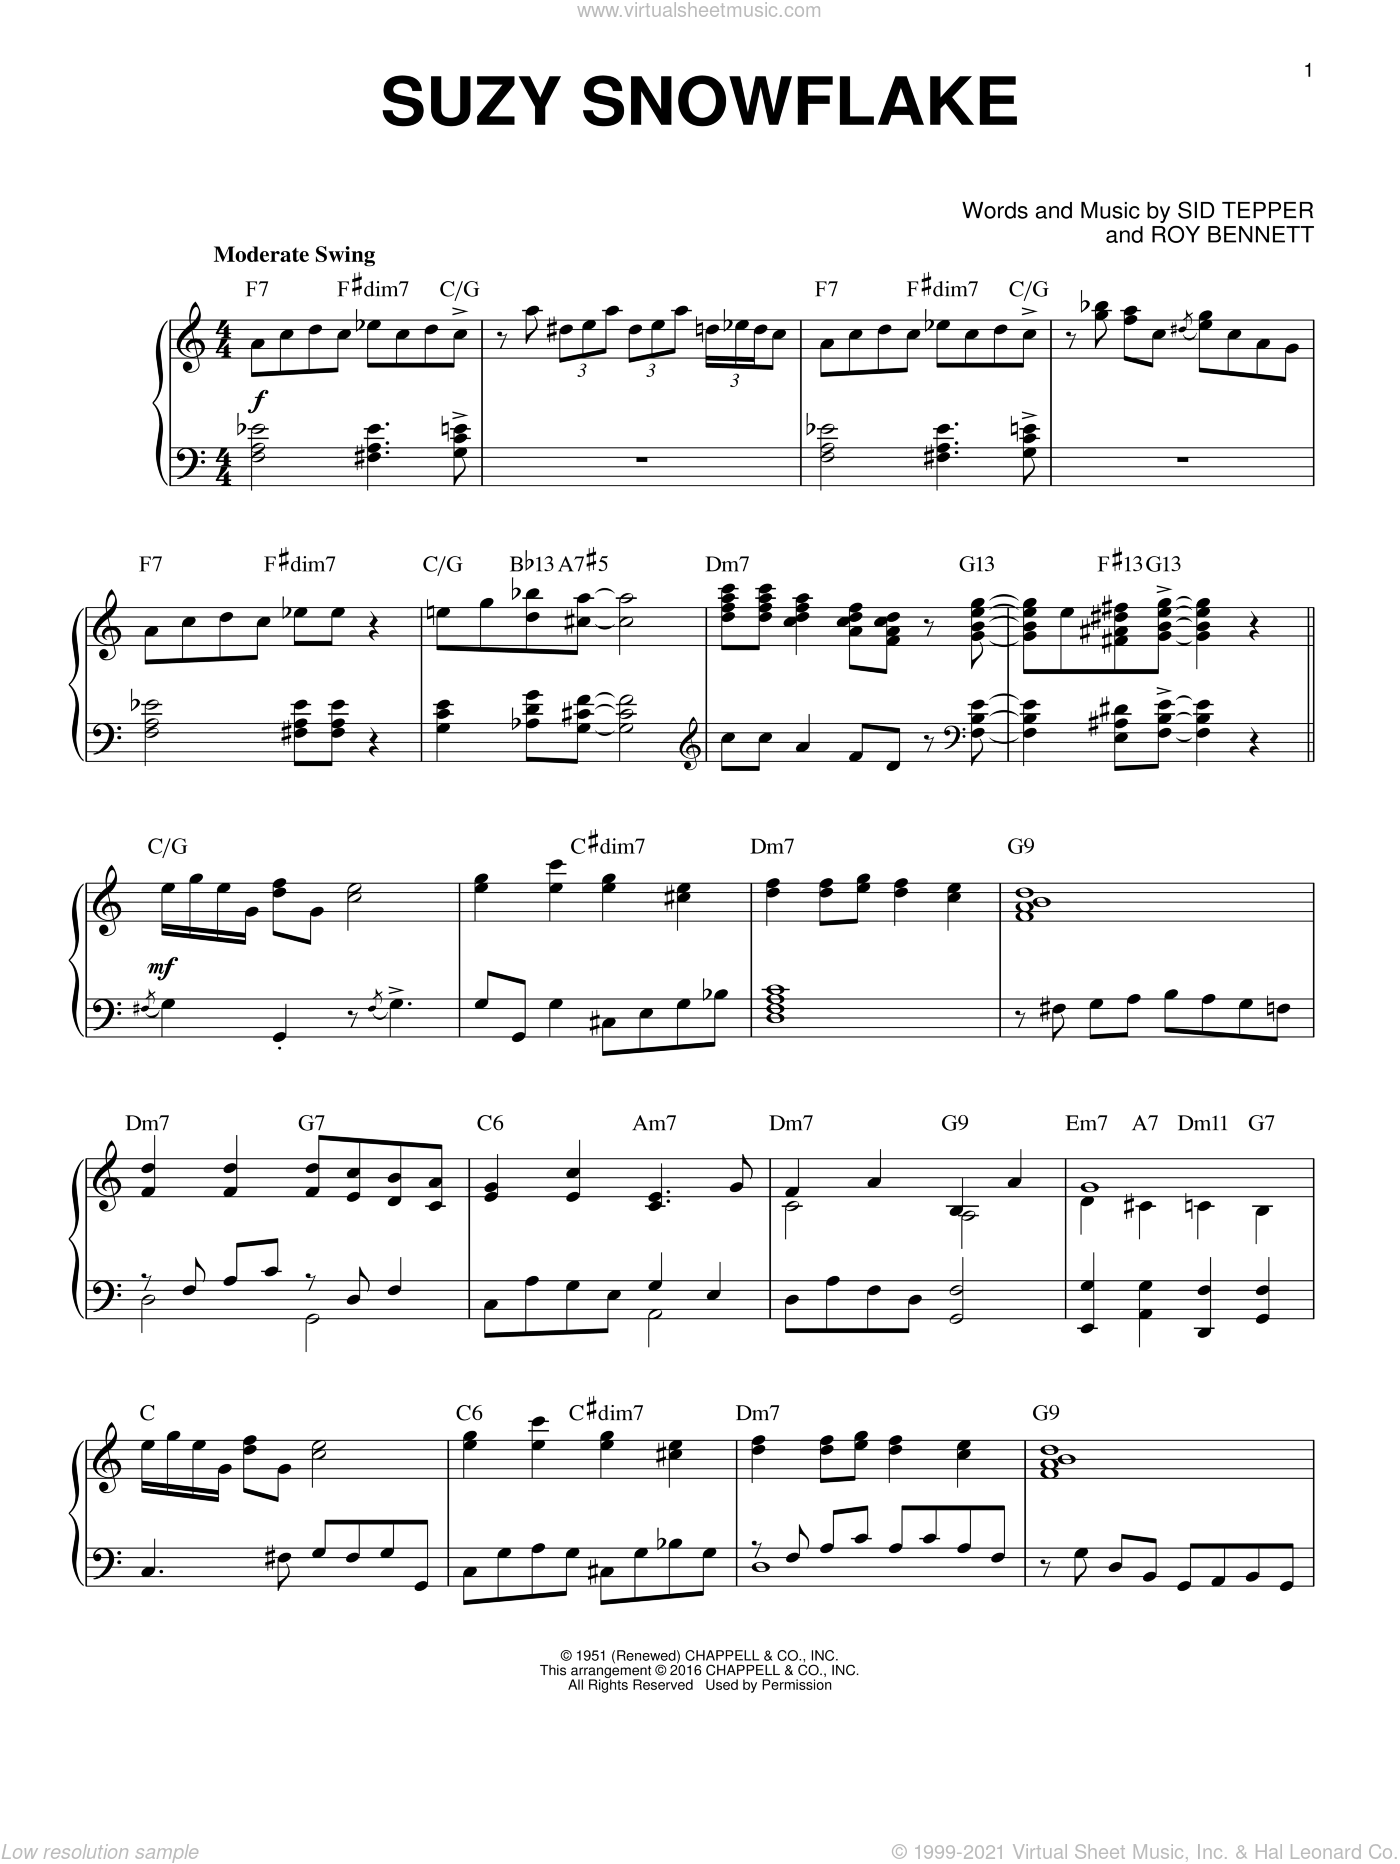 Suzy Snowflake sheet music for piano solo by Roy Bennett and Sid Tepper, intermediate. Score Image Preview.